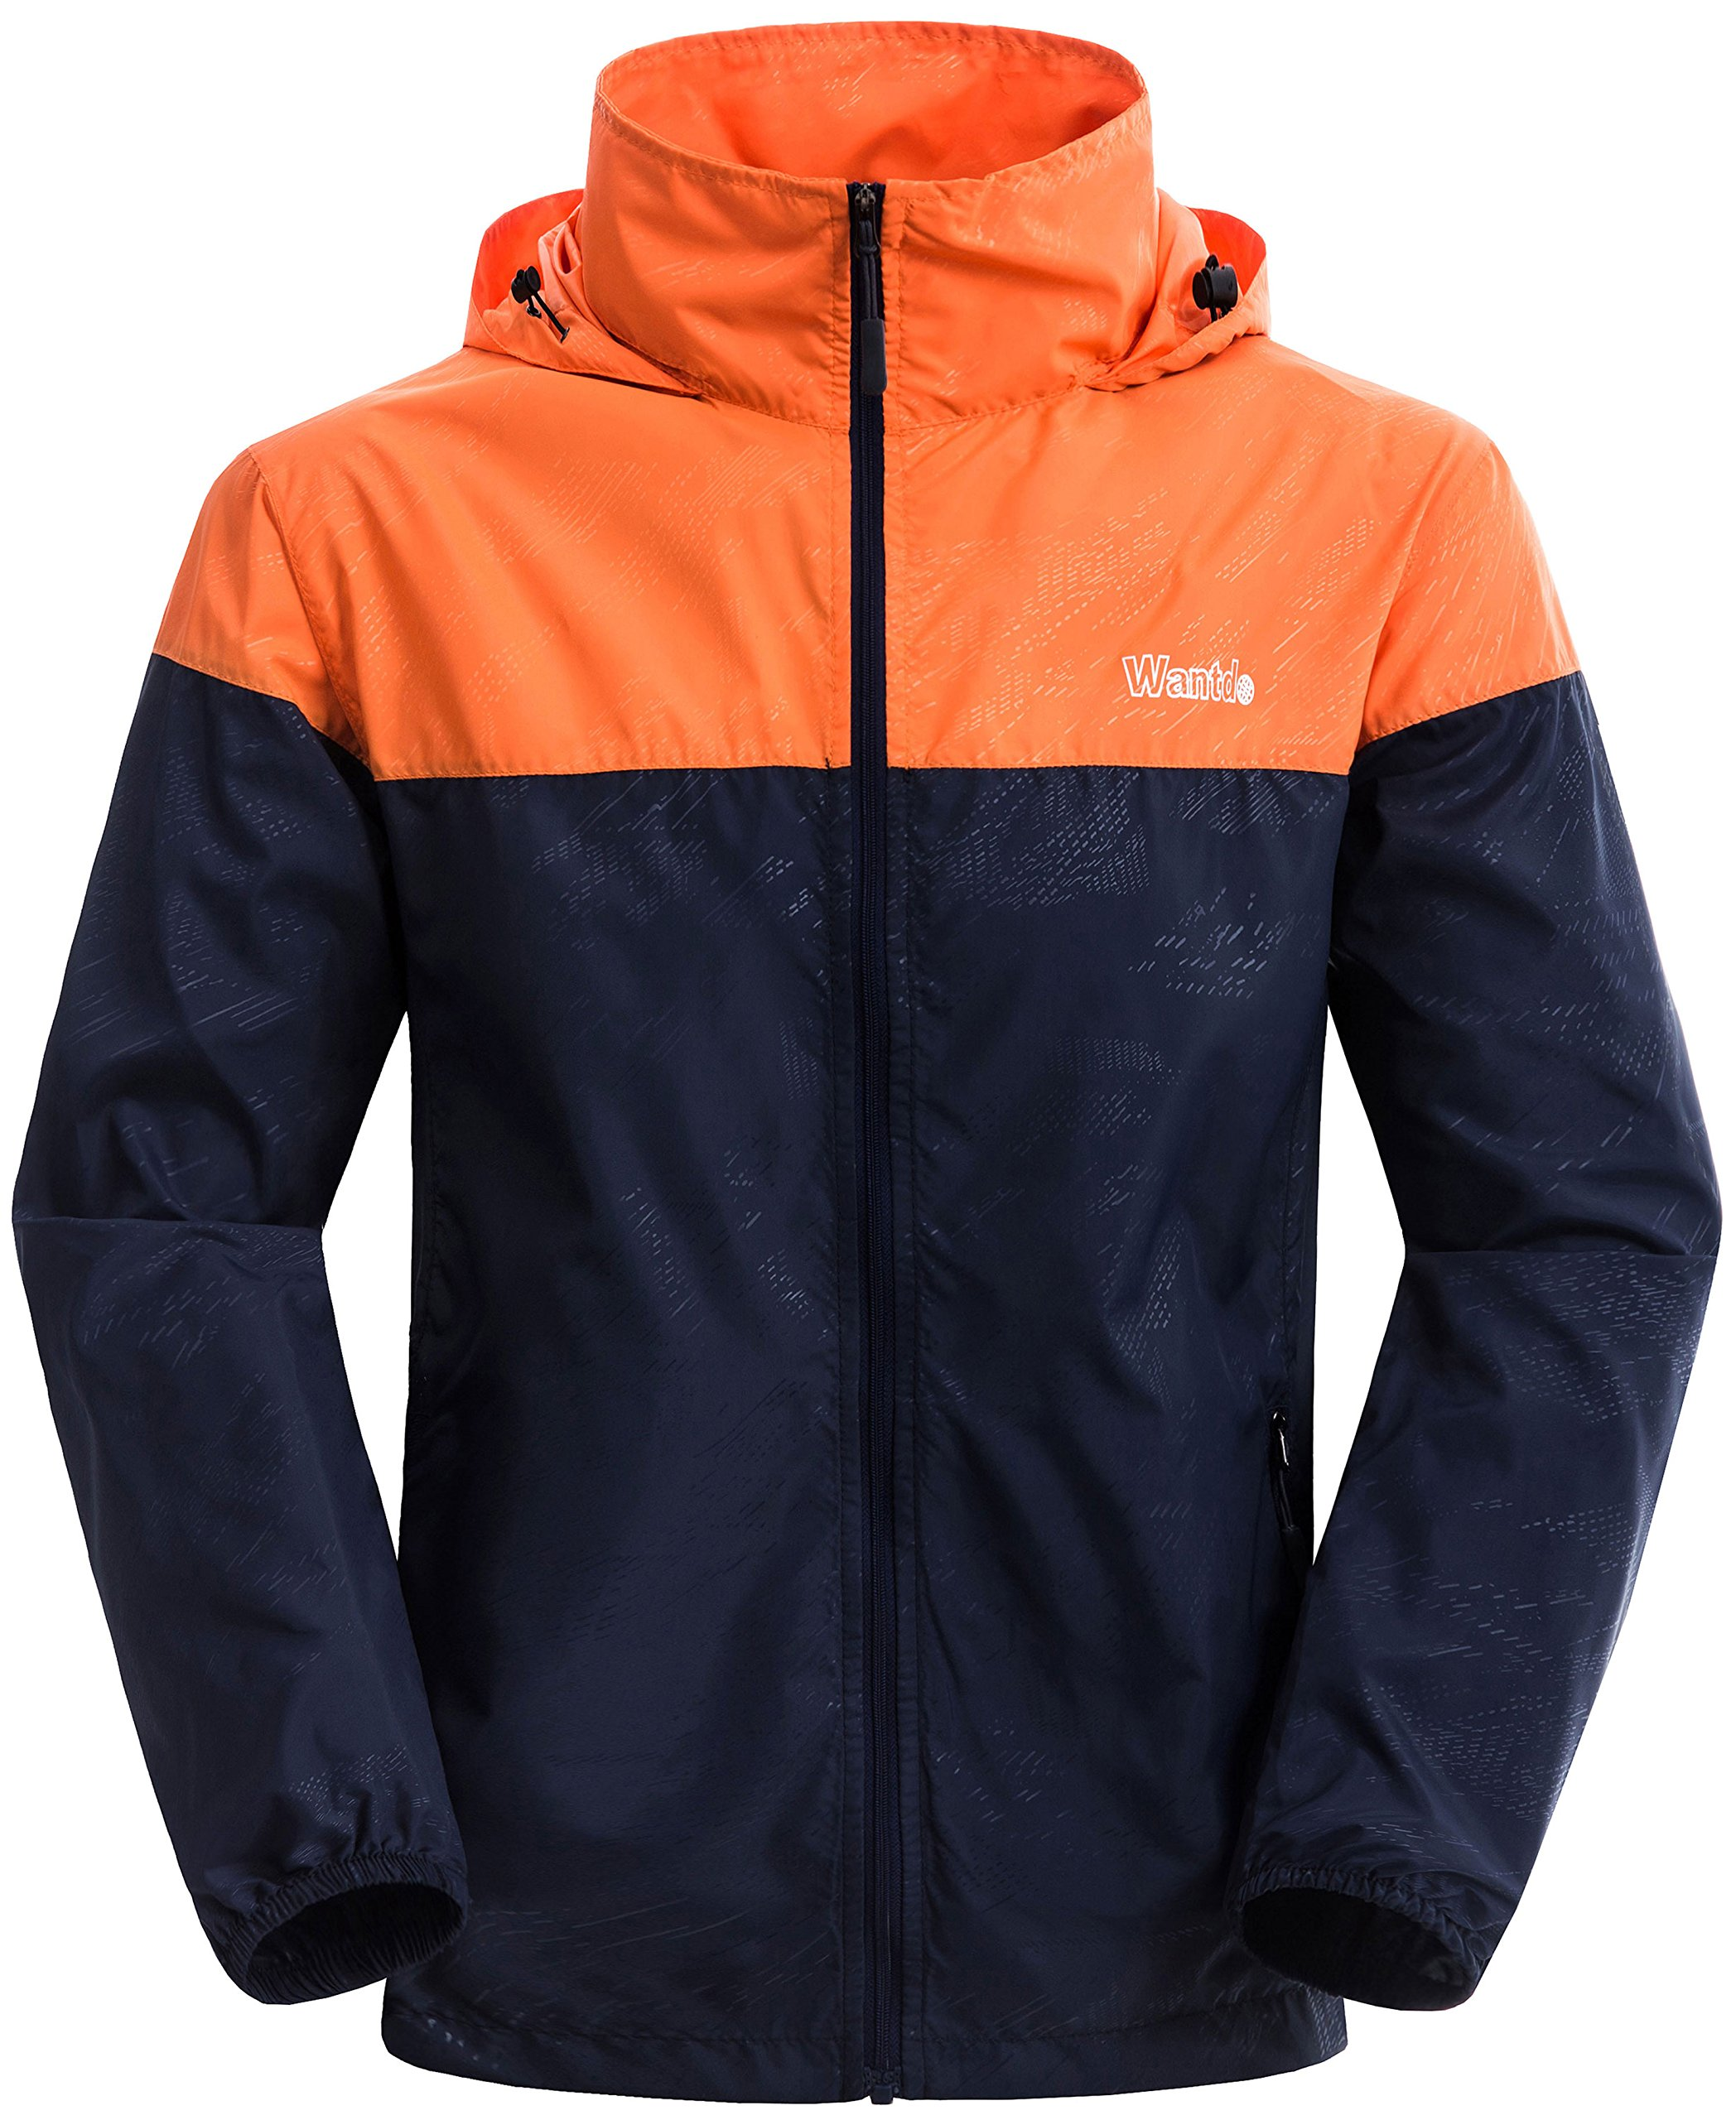 Wantdo Men's Lightweight Windbreaker Fall Packable Sport Outdoor Hooded Jacket Orange Navy US Medium by Wantdo